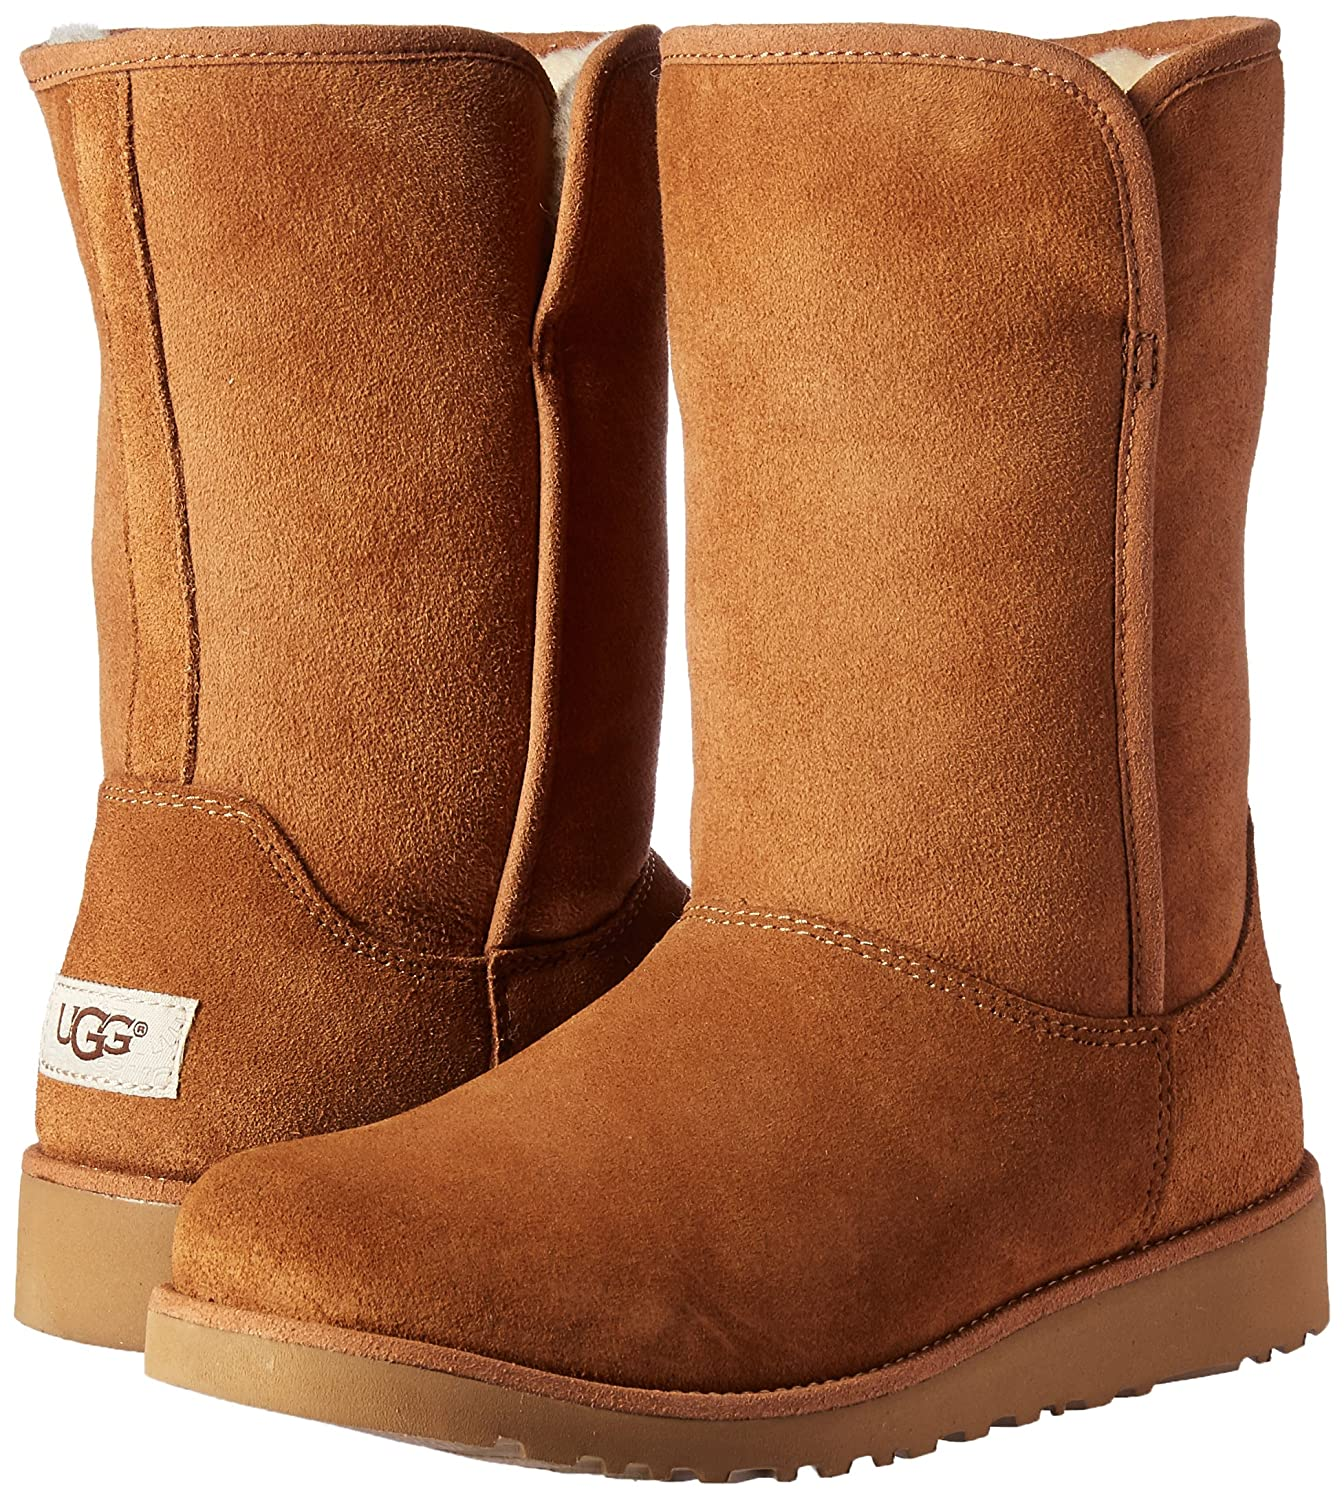 Amazon.com: UGG Kids K Alexey II Pull-On arranque: Shoes